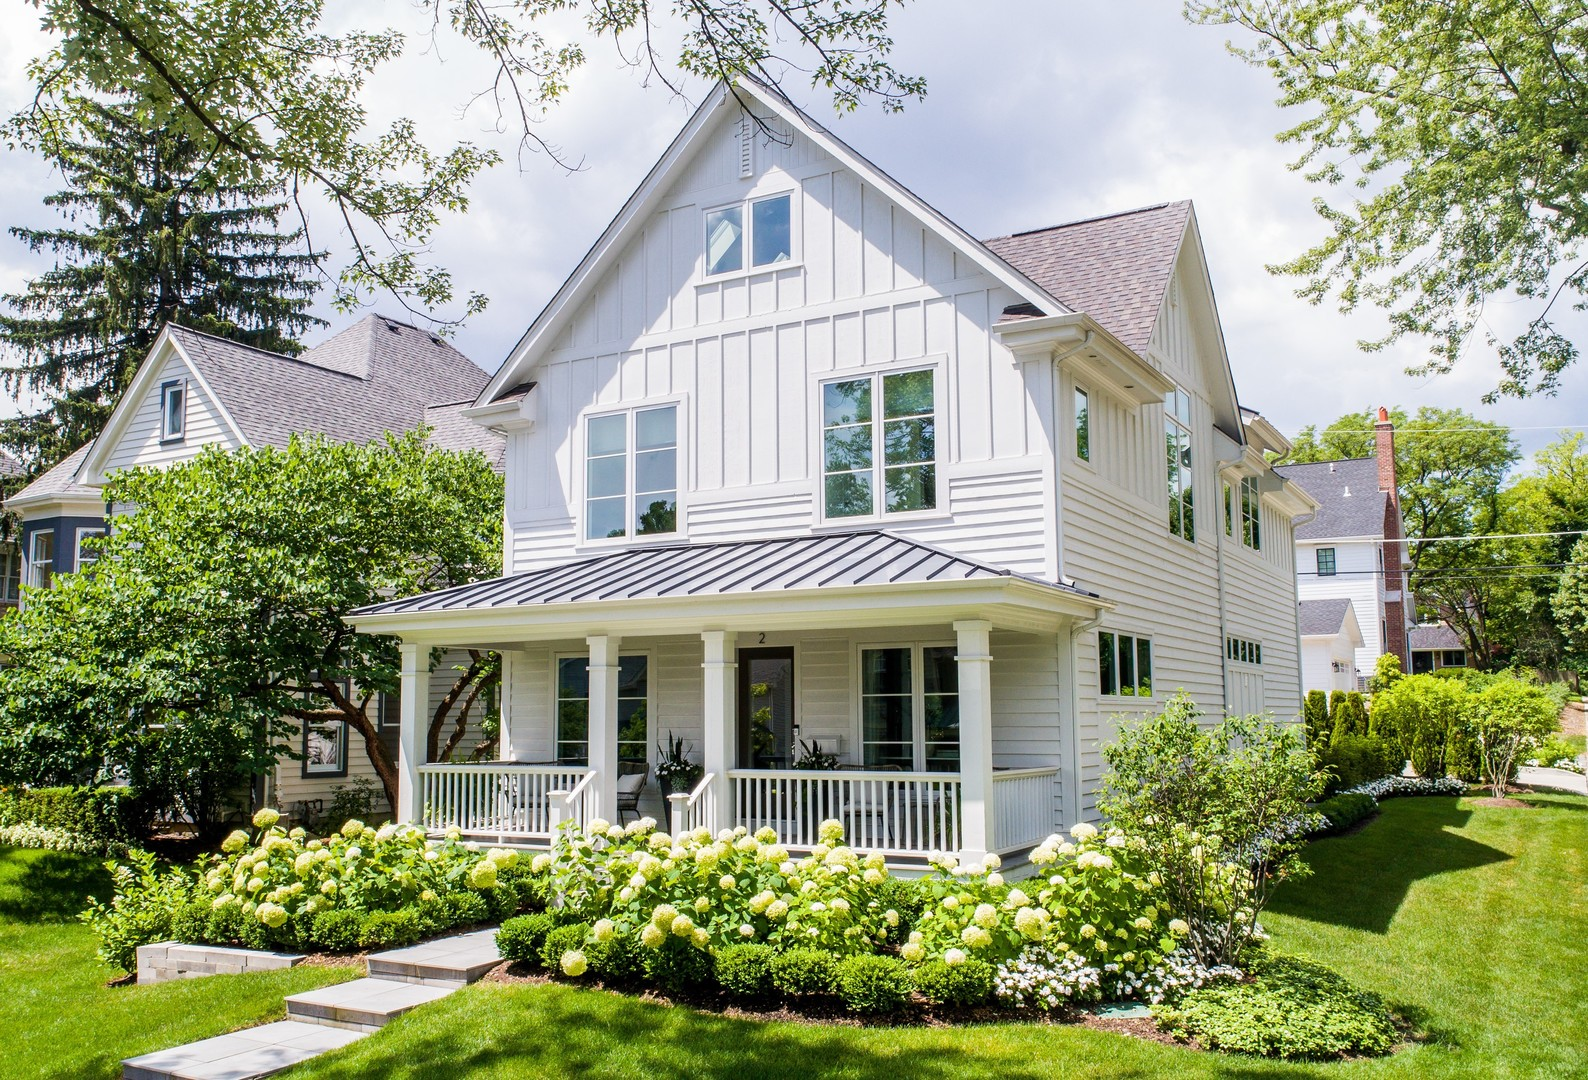 2 South Quincy Street, Hinsdale, Illinois 60521